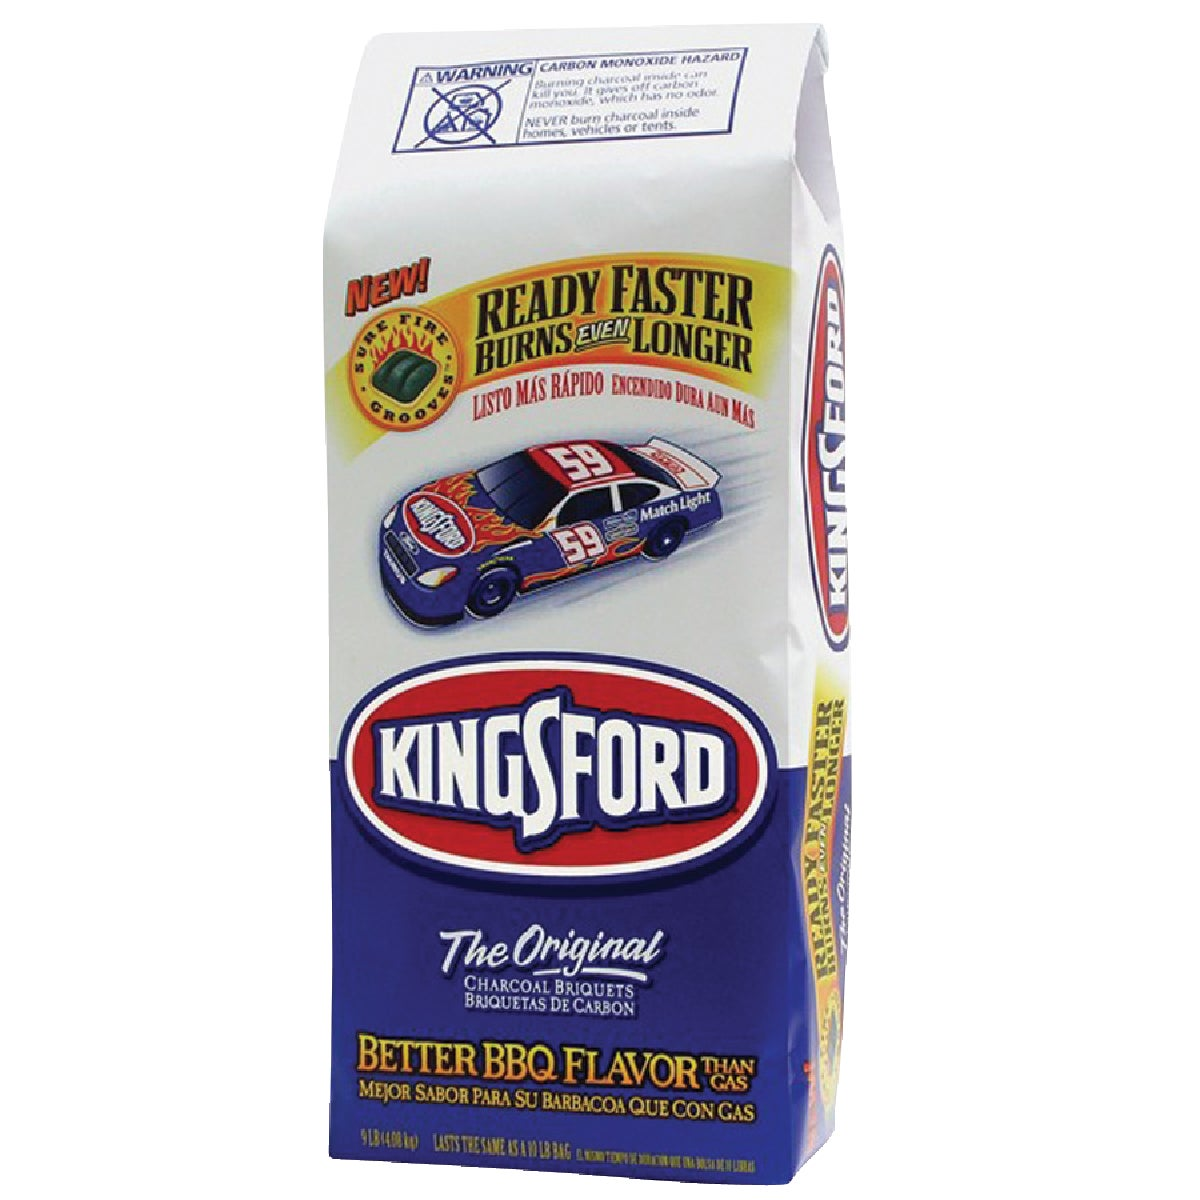 8.3LB KINGSFORD CHARCOAL - 30498 by Clorox/ Kingsford